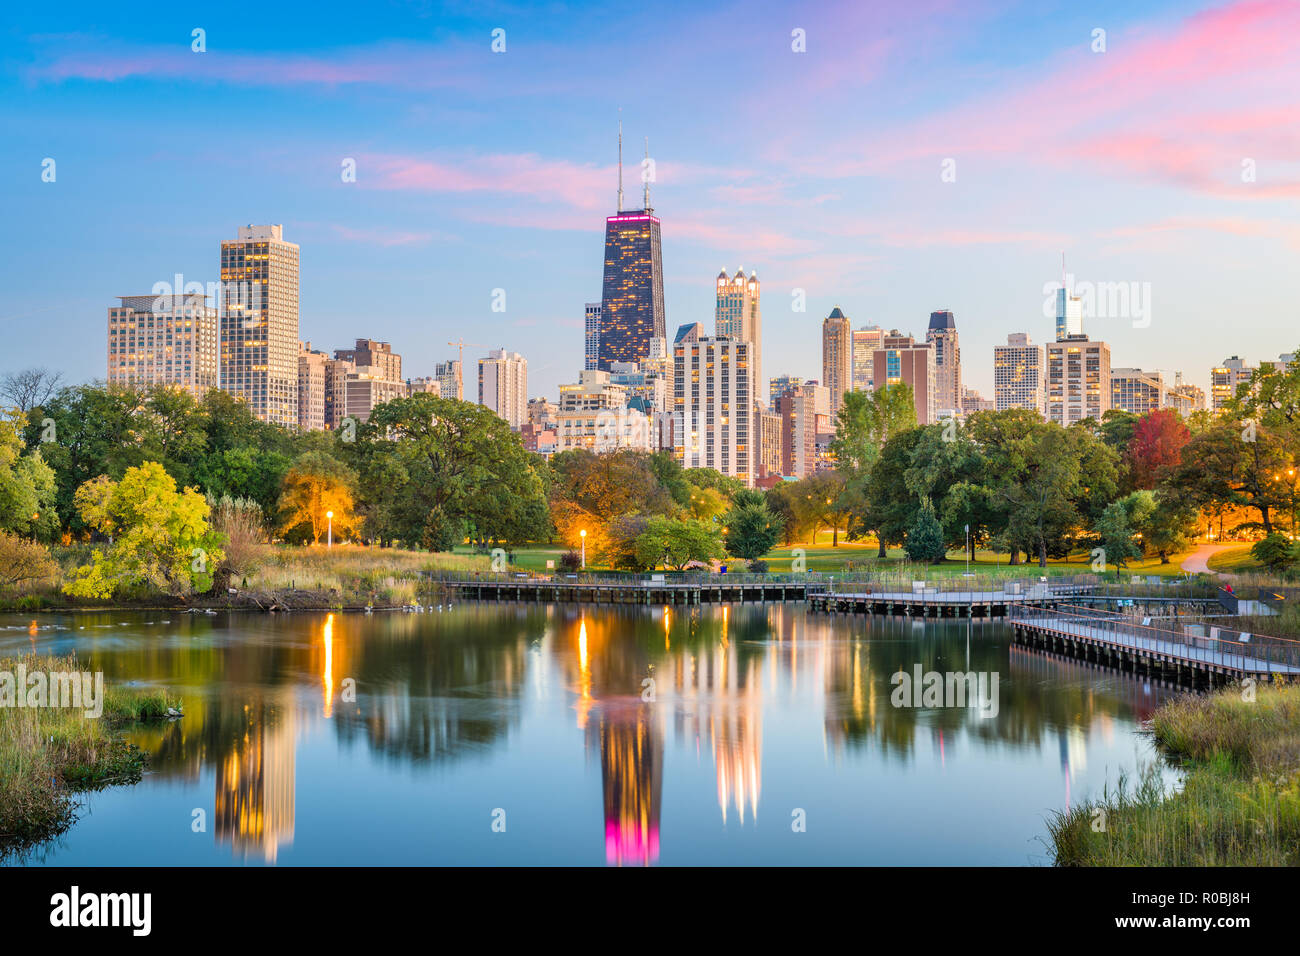 Chicago, Illinois, USA downtown skyline from Lincoln Park at twilight. - Stock Image